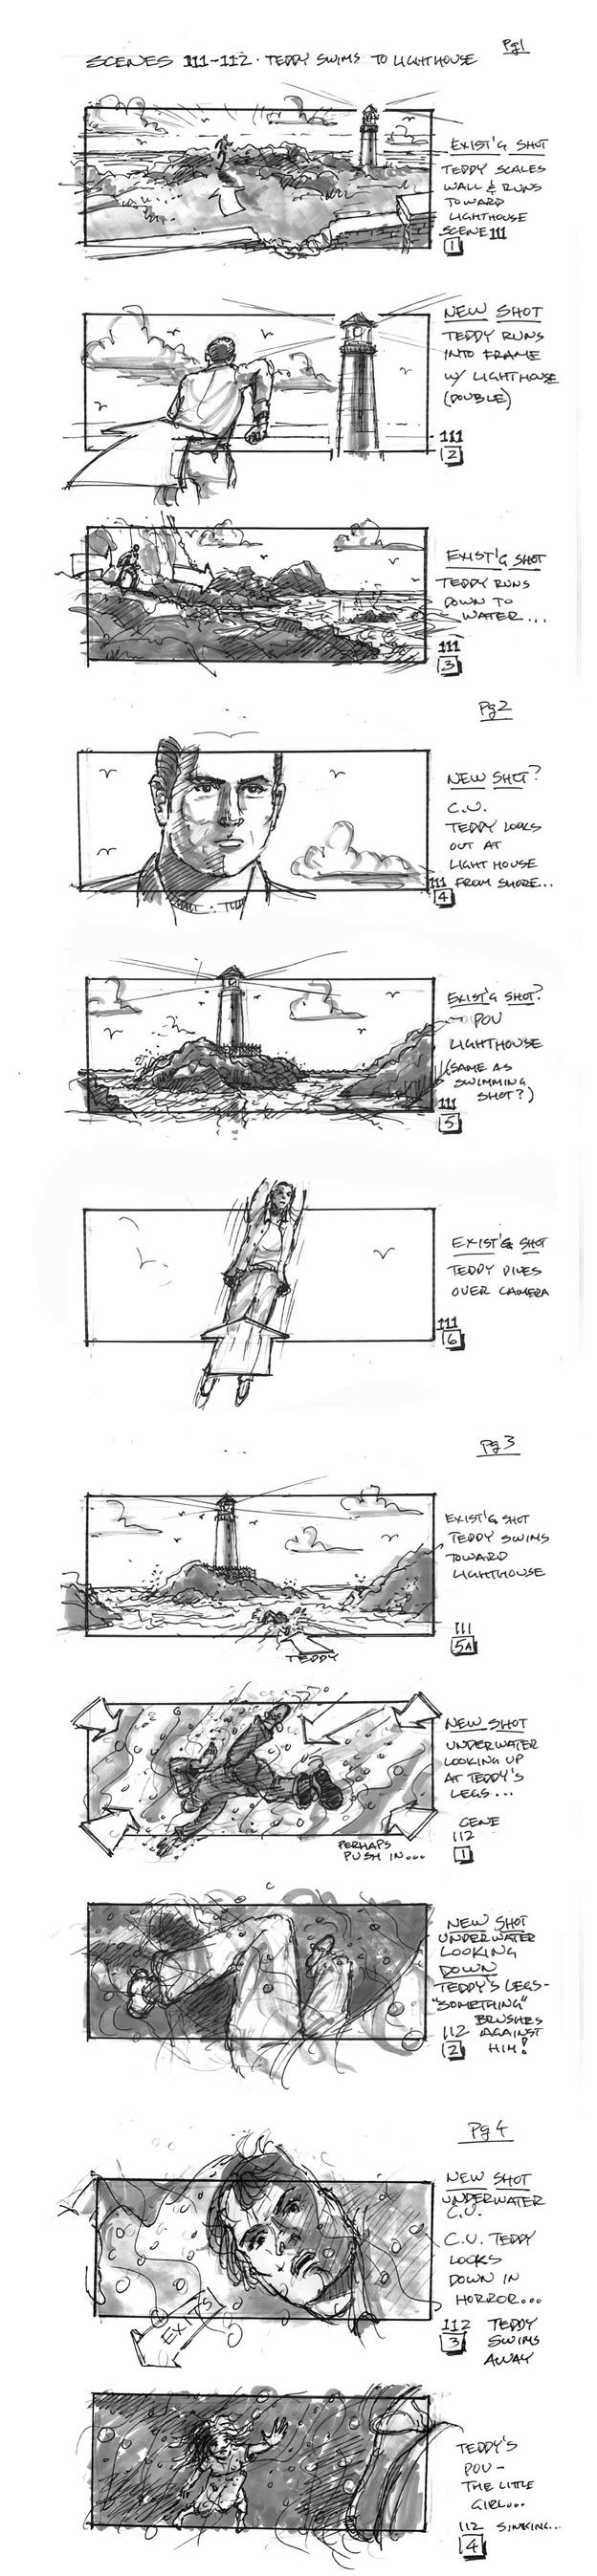 "famous movie storyboards ""Nice, efficient and dramatic"" KB"